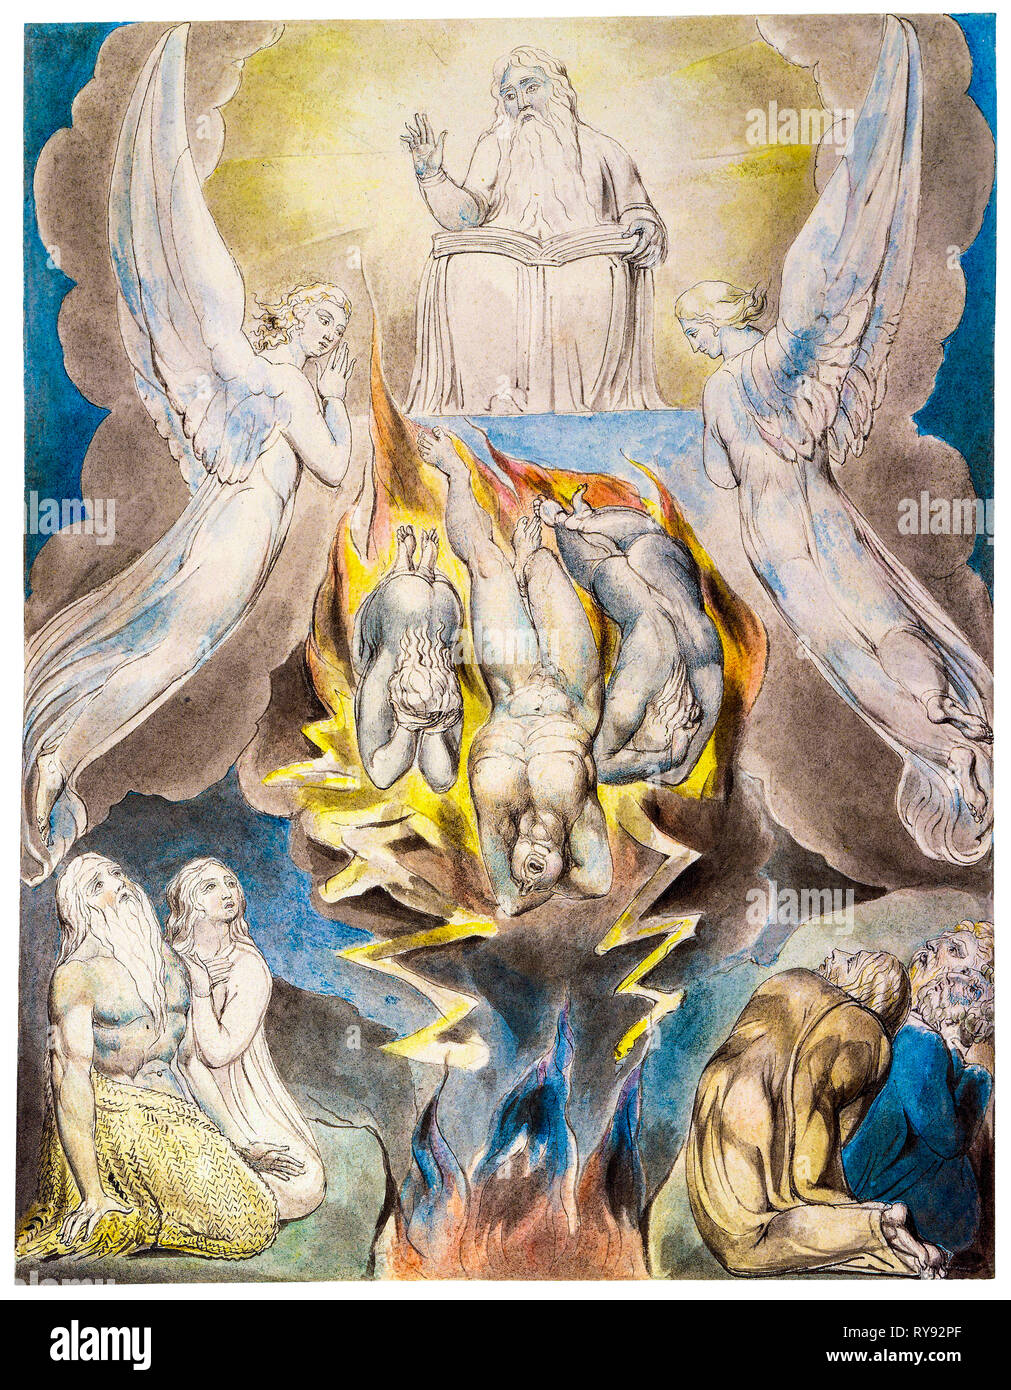 The Fall of Satan, painting by William Blake, 1805 - Stock Image